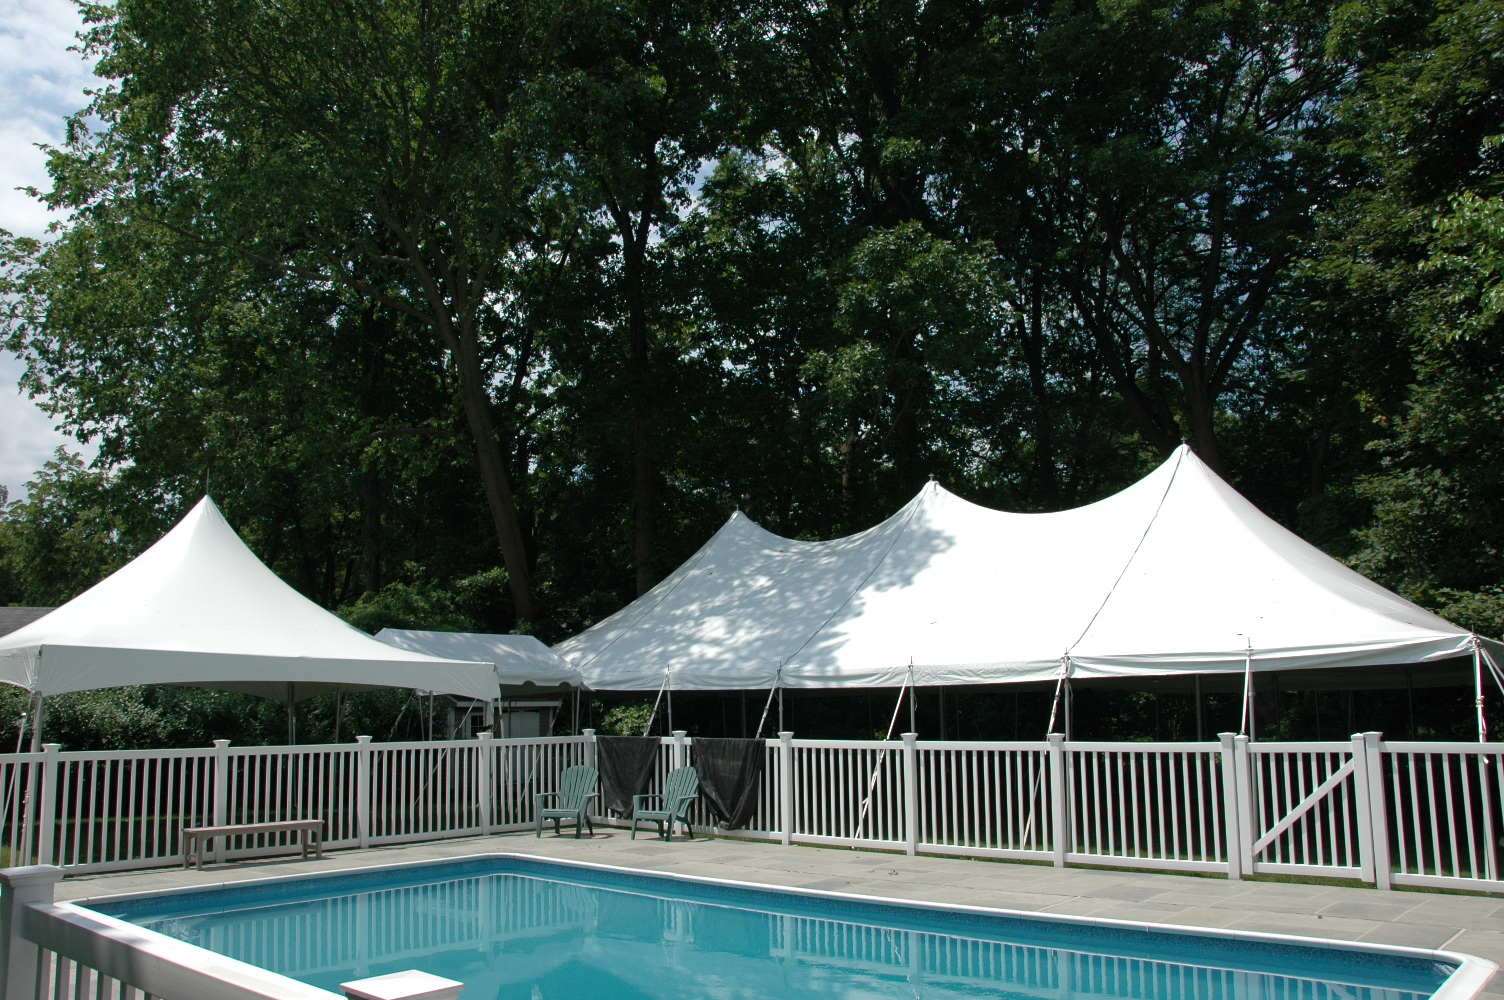 file tents set up for party in the backyard around the pool jpg